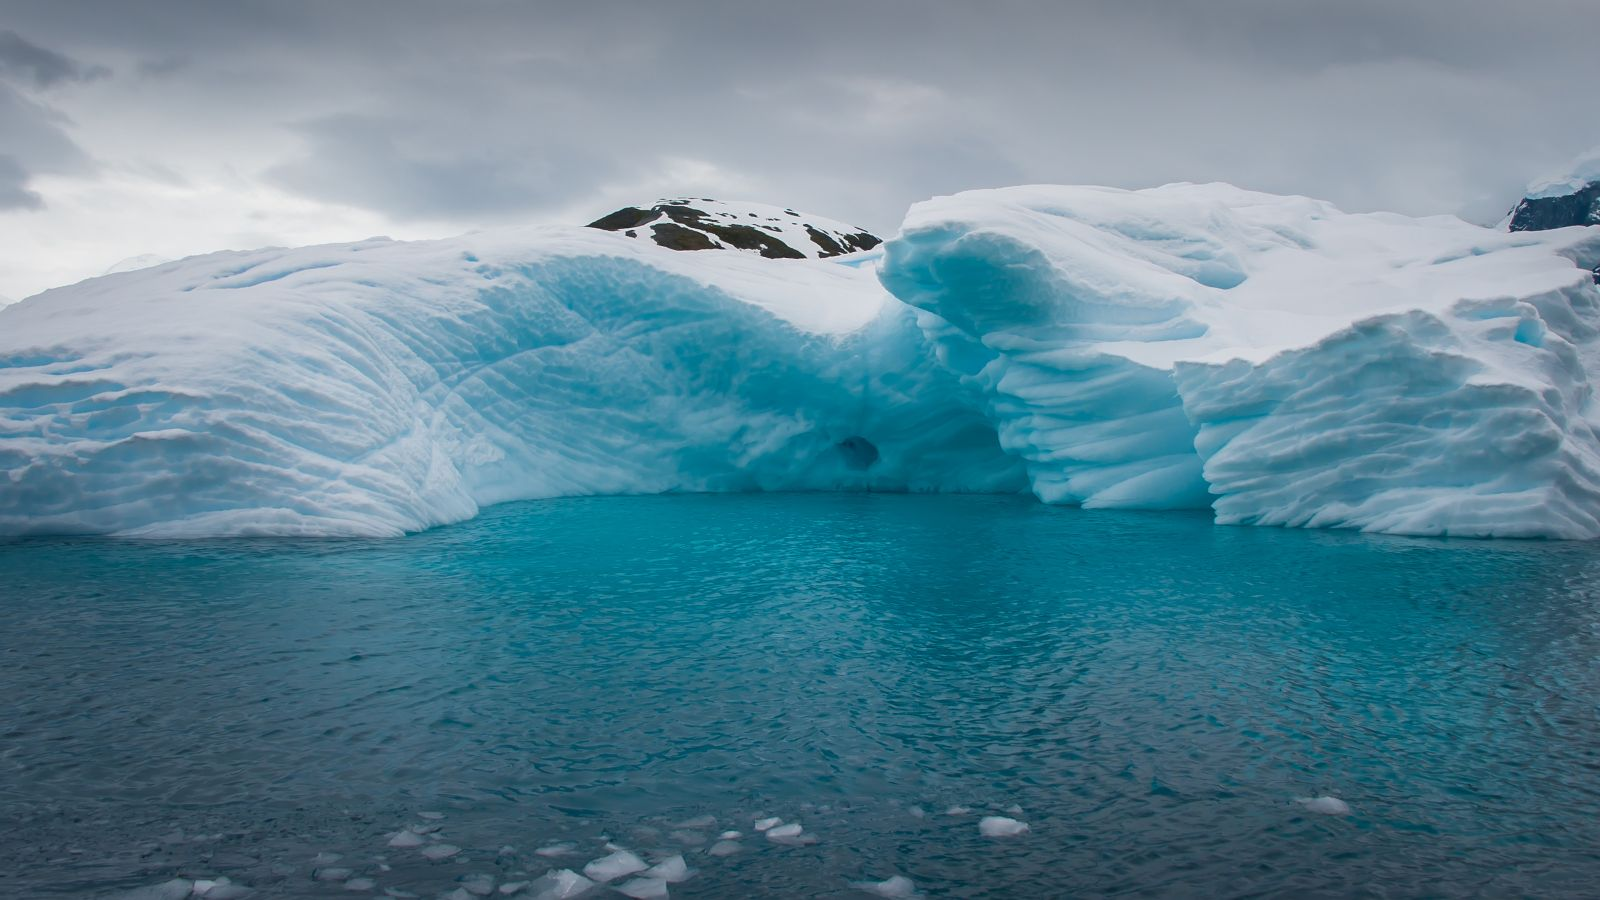 Landscape of an iceberg in a deep blue antarctic sea